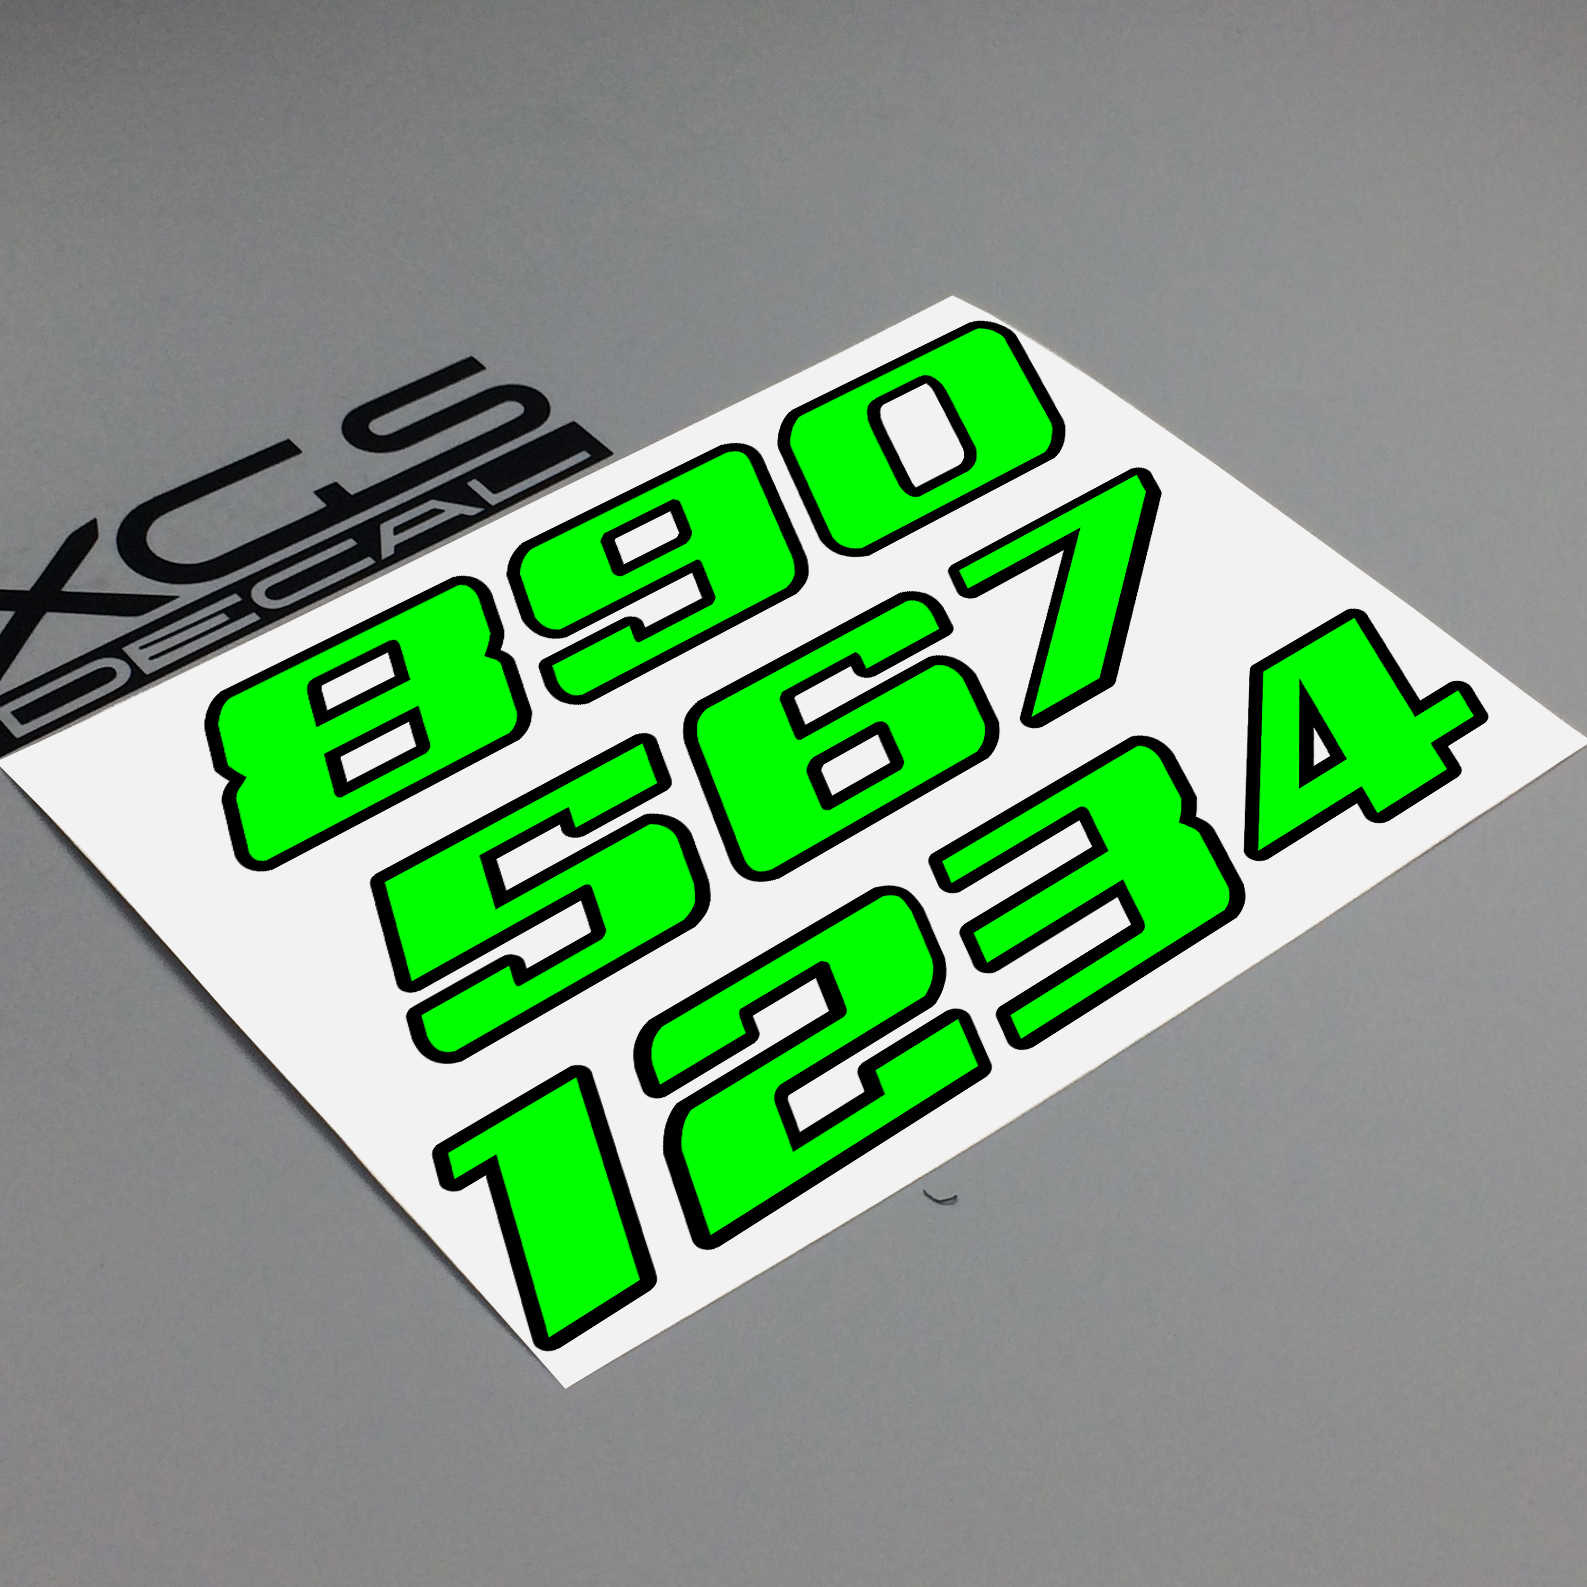 XGS DECAL Auto sticker Nummer Neon Tl Dubbele Laag Vinyl Cut Motorfiets ATV Helm sticker Outdoor Decal